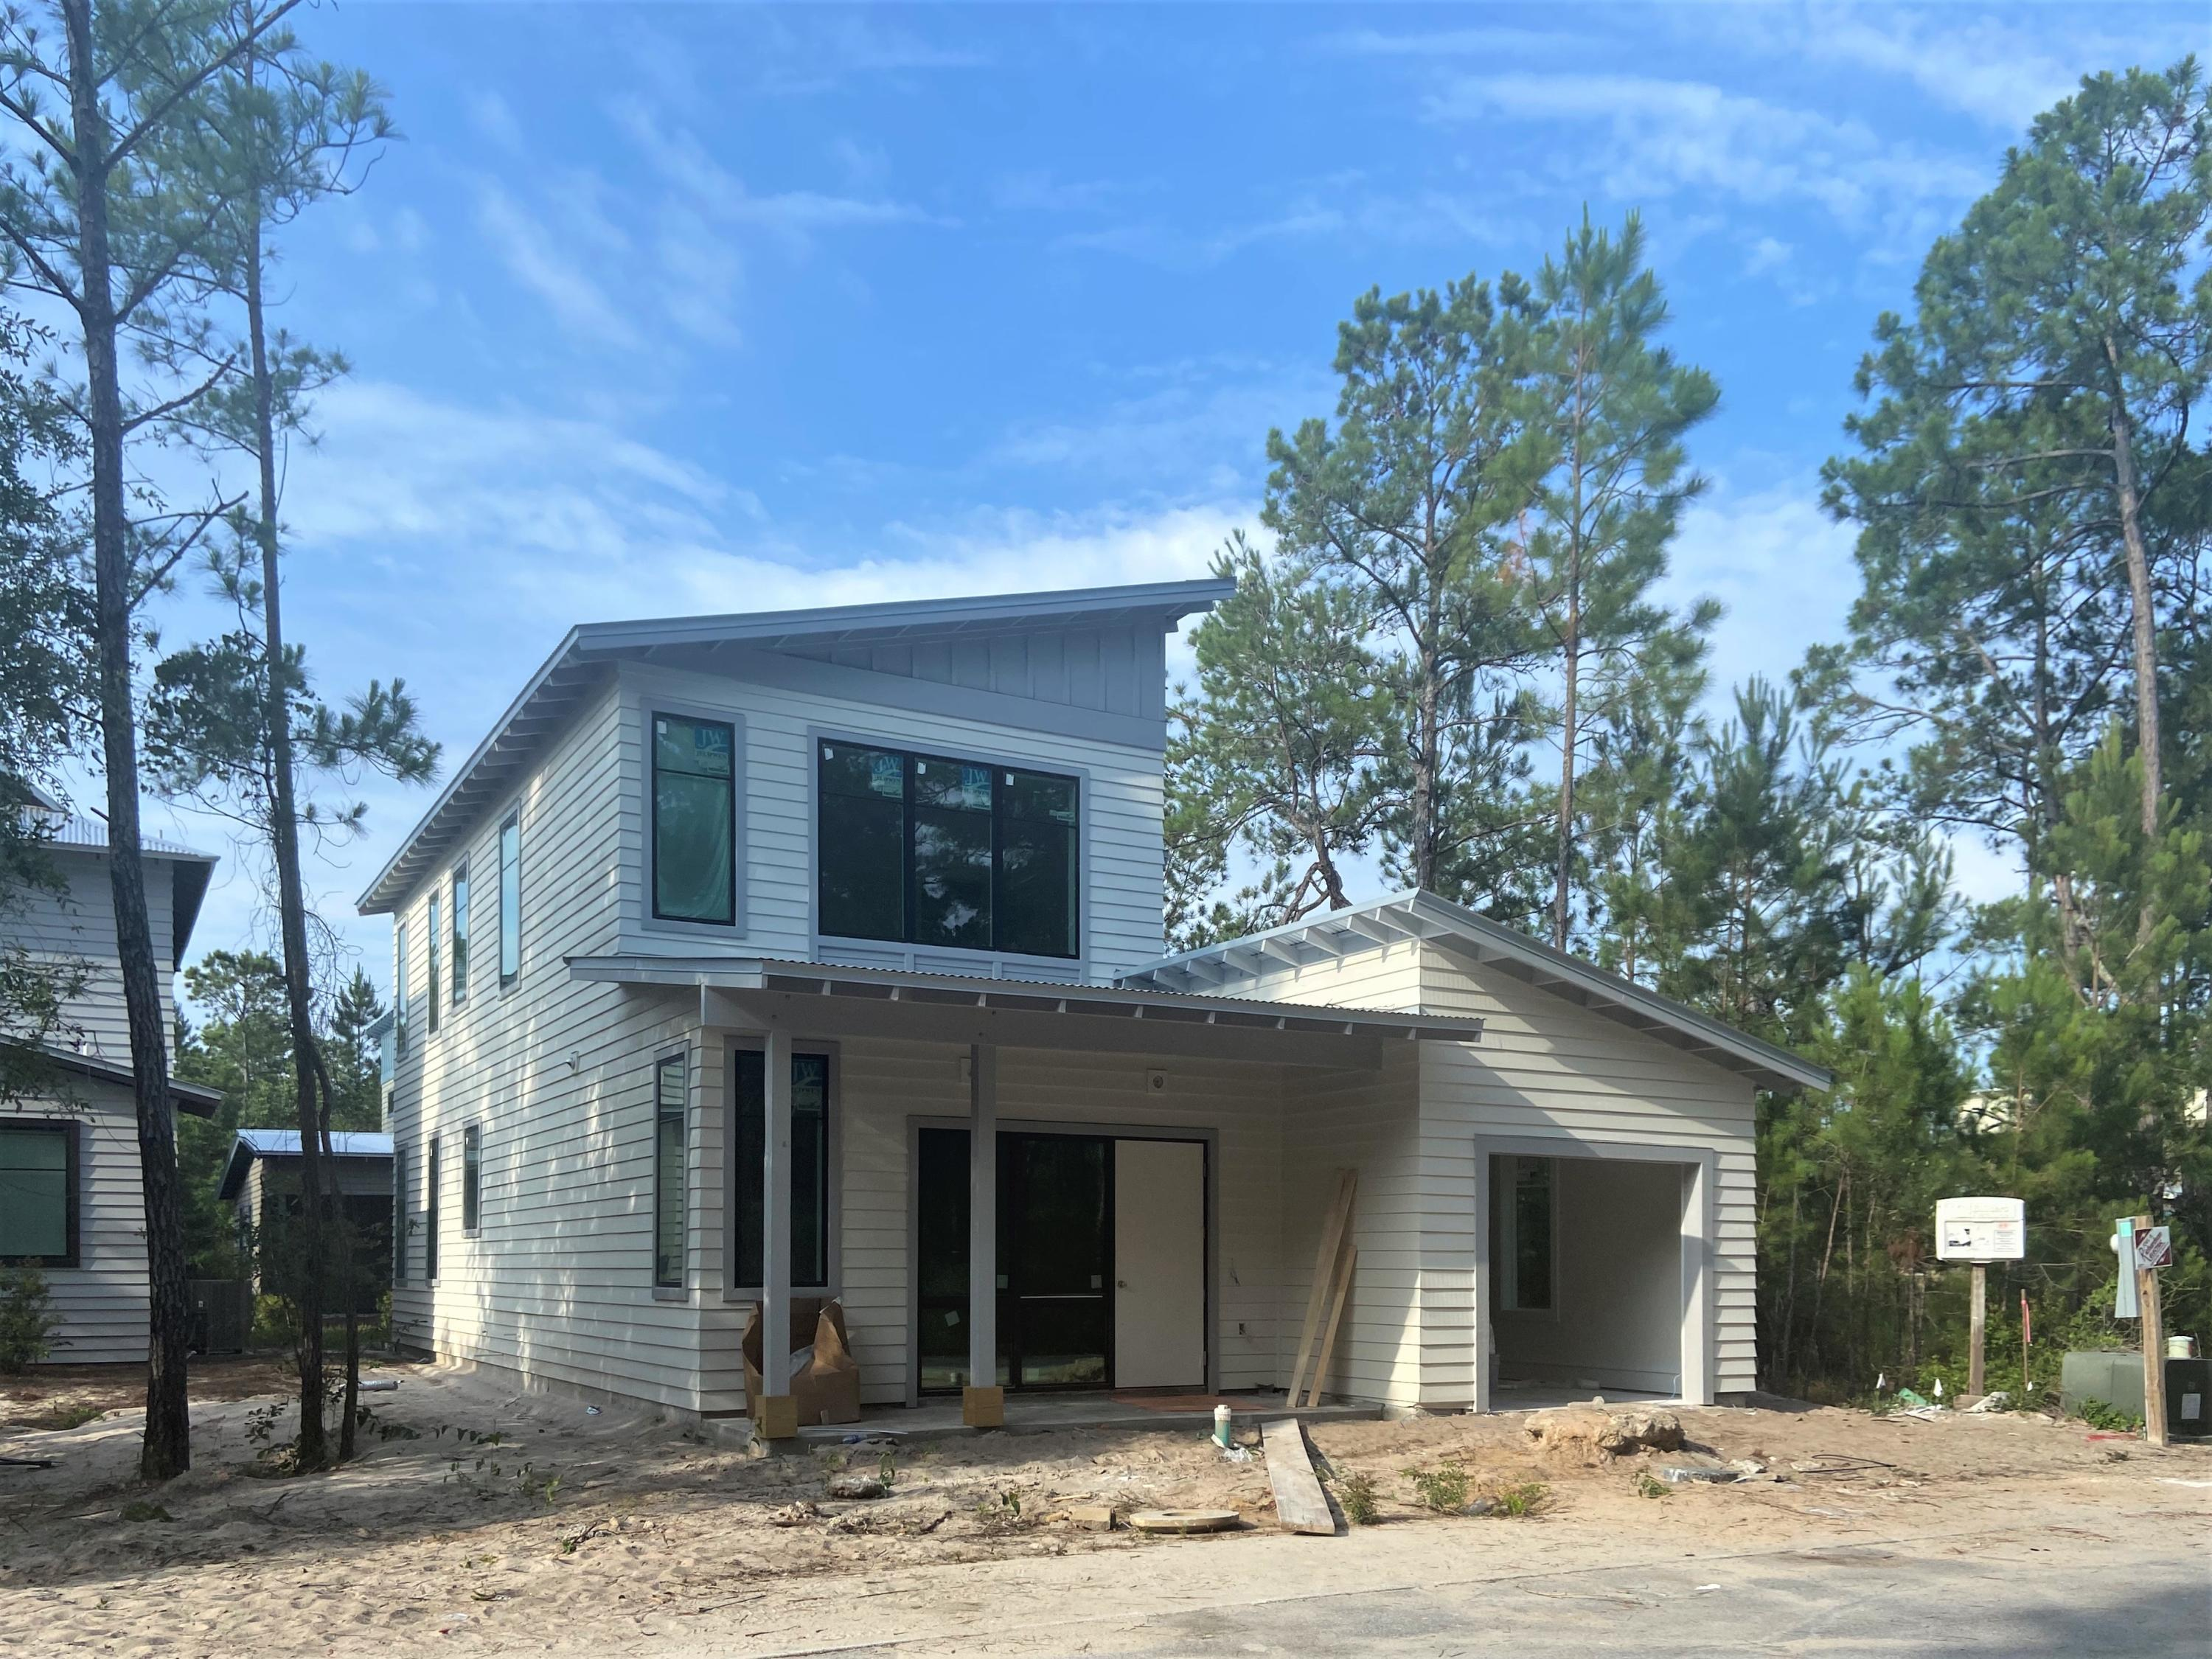 Brand-new 4-bedroom home on Historic Point Washington. High-quality construction, and Eden State Park, the school and boat launch are all within walking distance. Discover SOUTH WALTON'S NEXT GENERATION HOMES, thoughtfully designed for today's families. Enjoy the privileges of living the good life as a local. Come walk through Eden's Landing, as well as some of the new homes under construction. Please verify all information. Ask about our Closing Cost assistance programs.